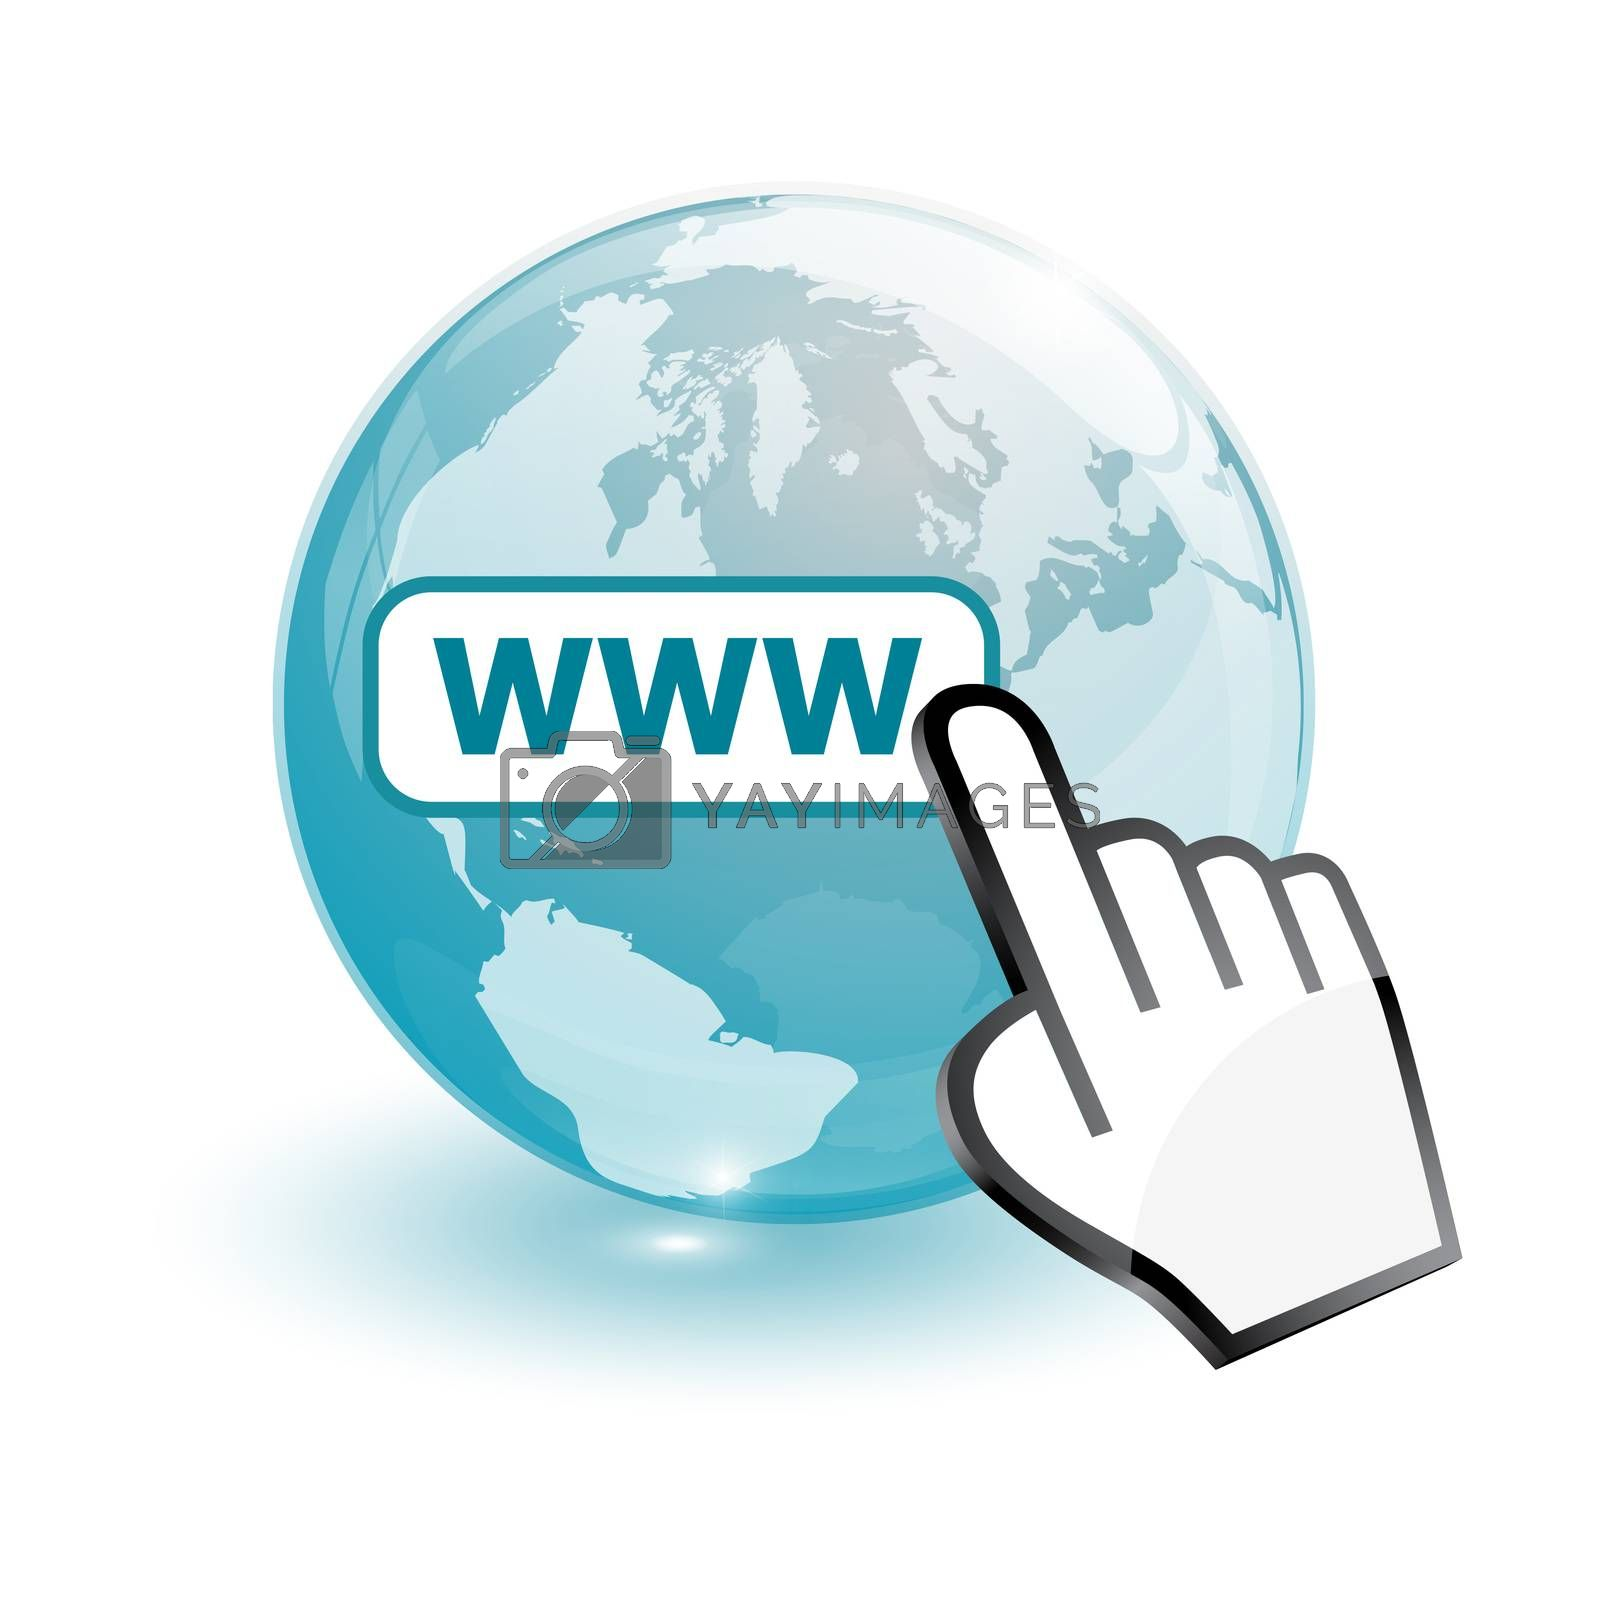 Royalty free image of world map and world wide web searching by mizar_21984